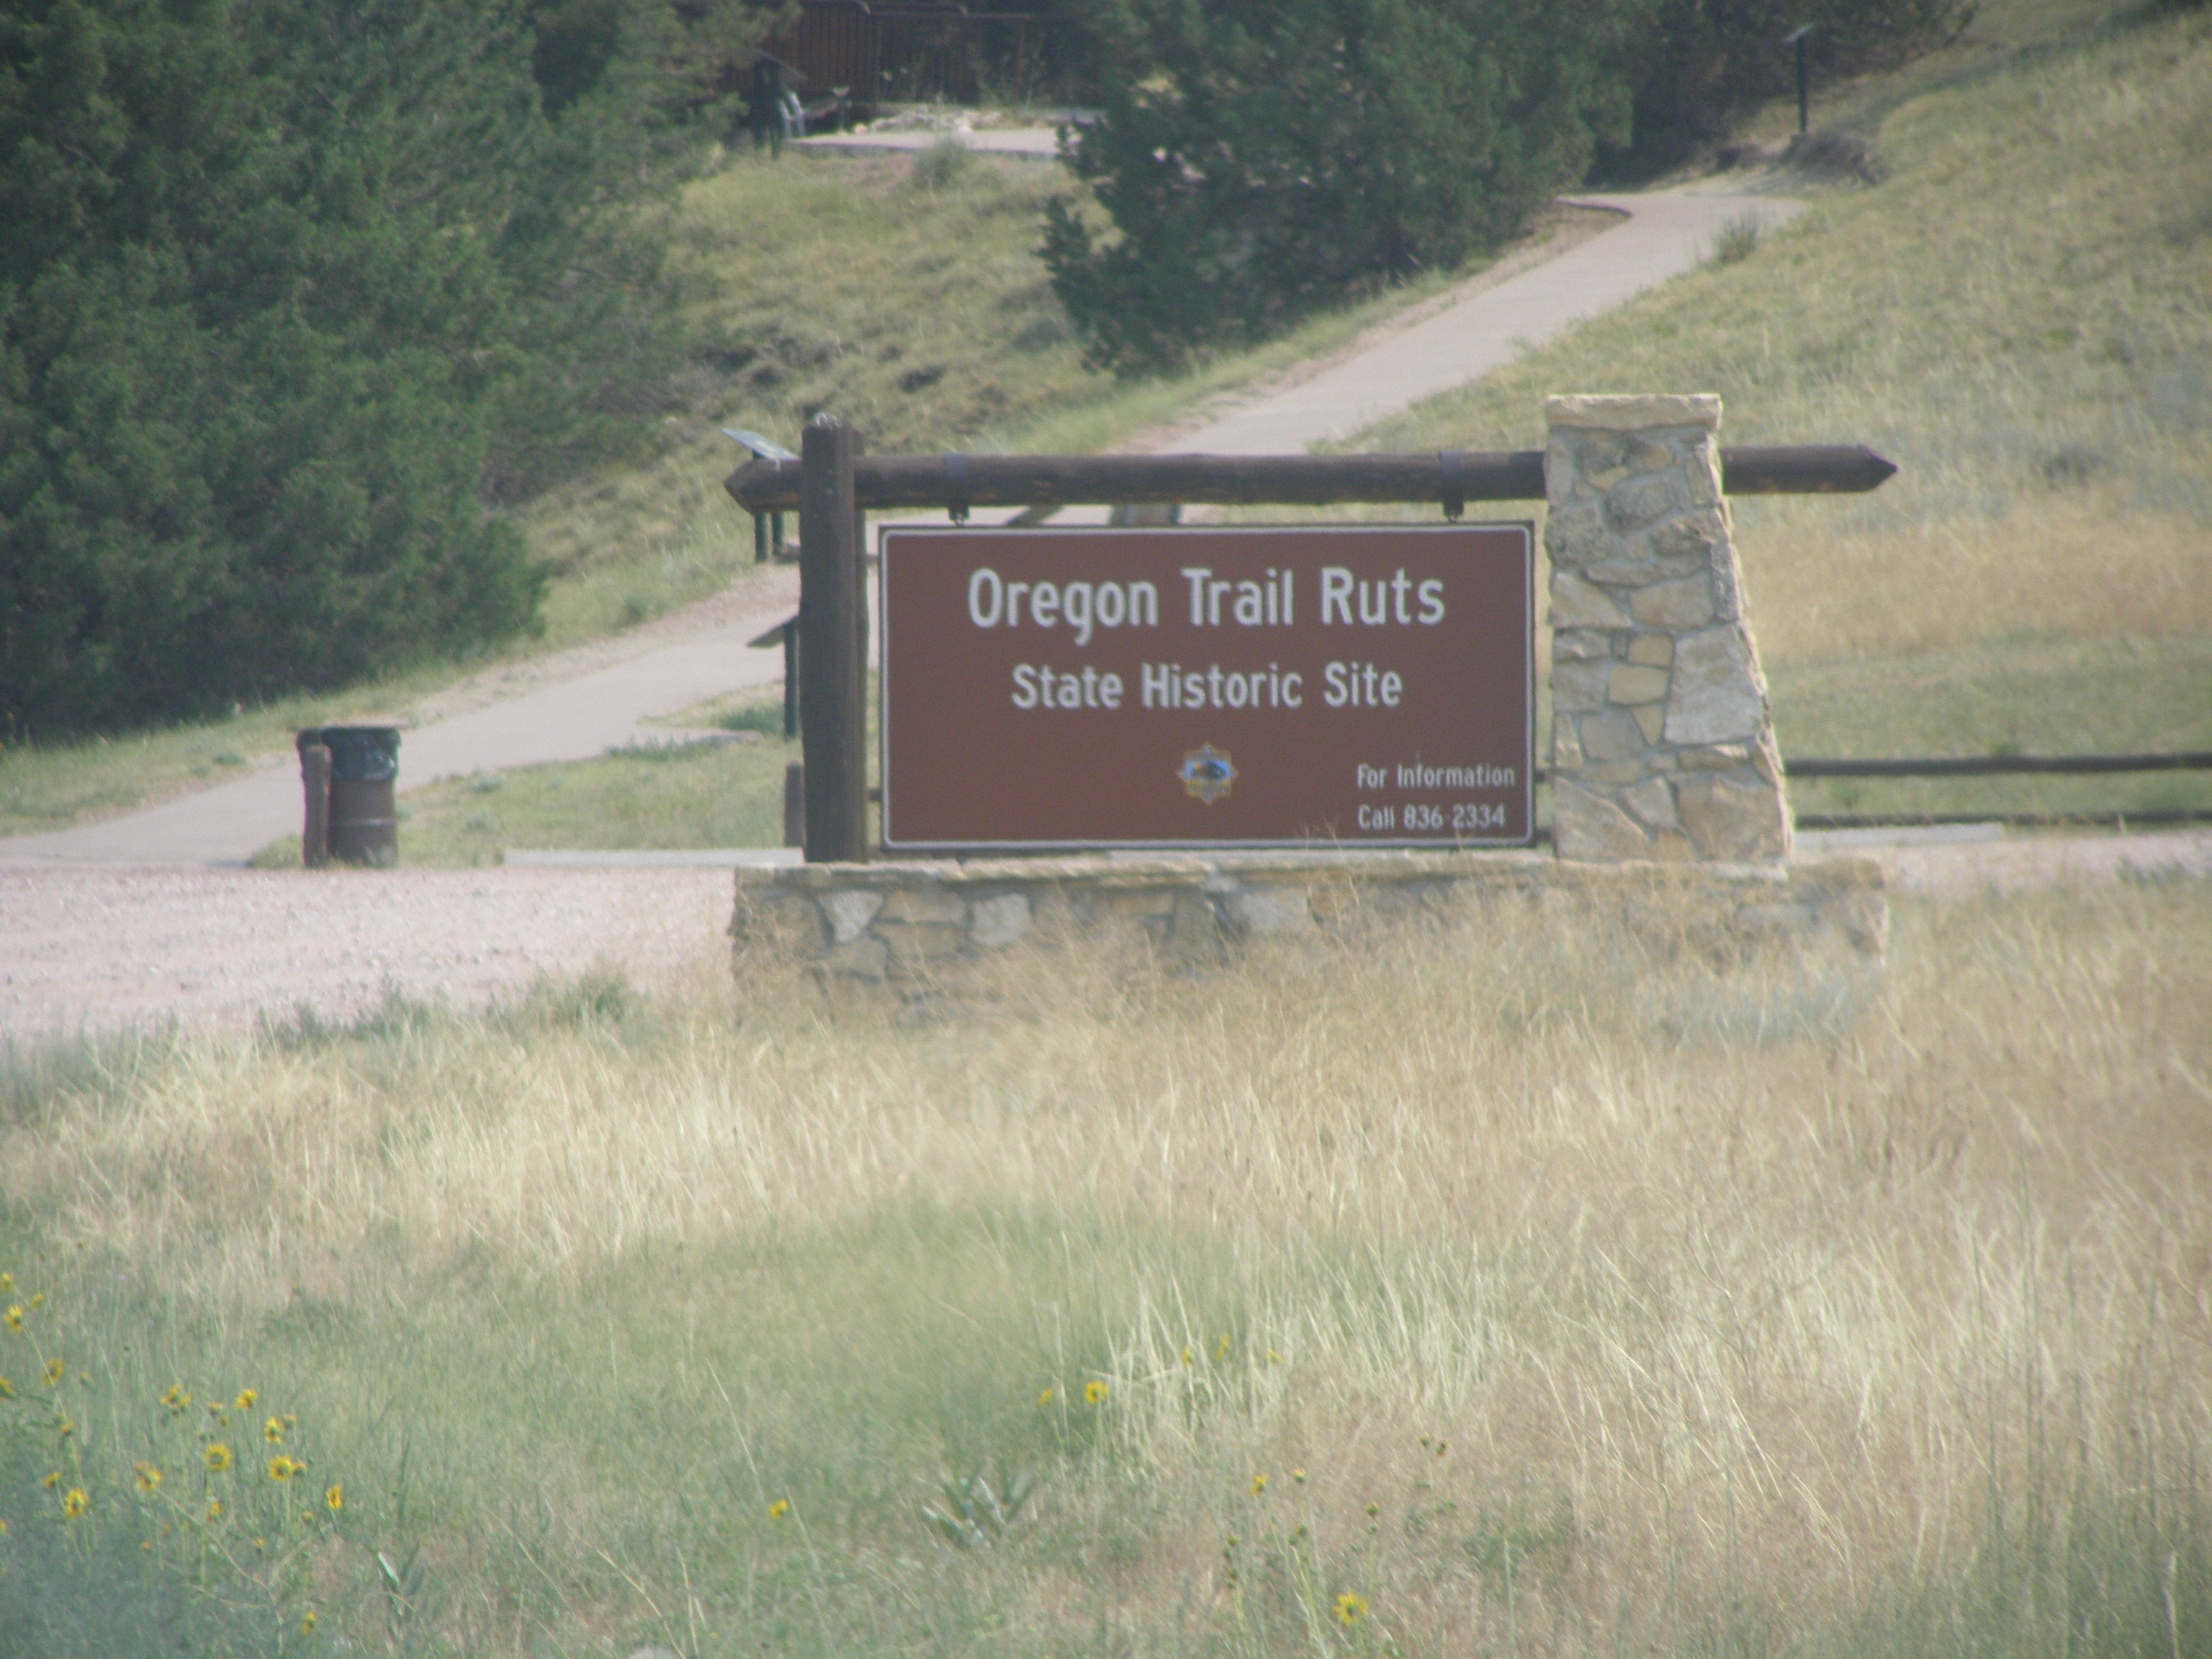 Oregon Trail Ruts State Historic Site